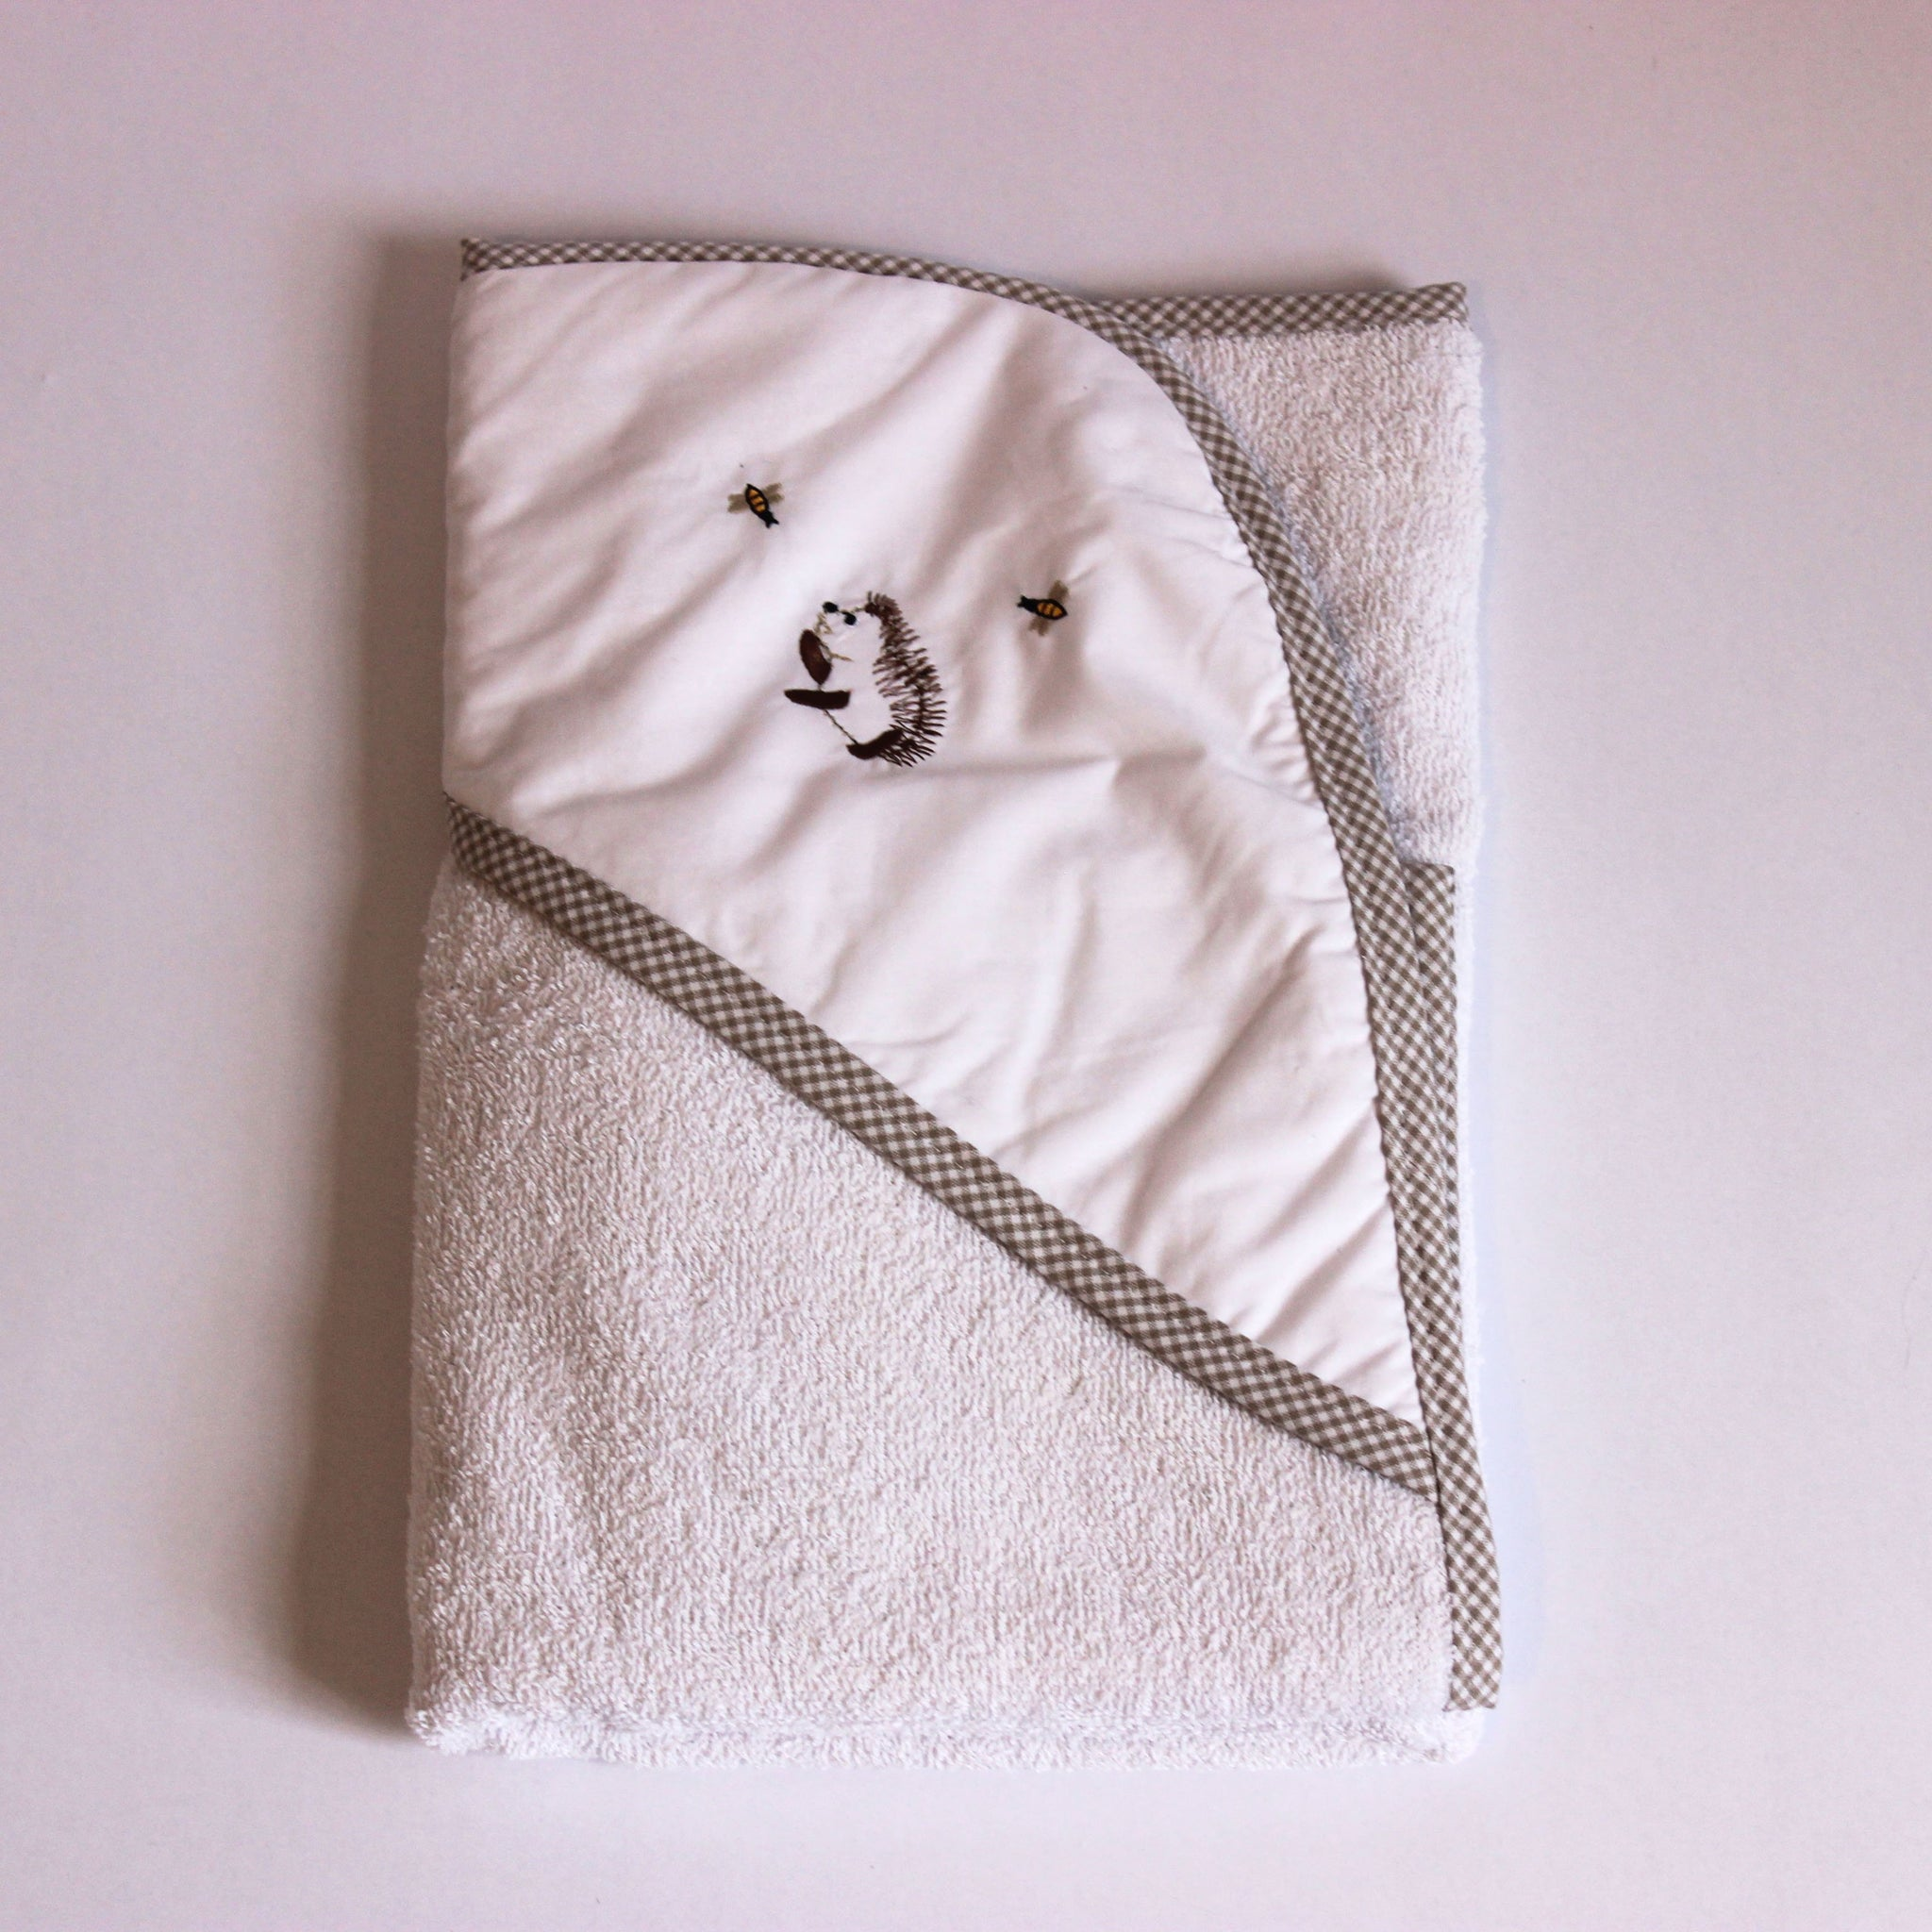 Hooded Towel - Happy Hedgehog with Stone Trim